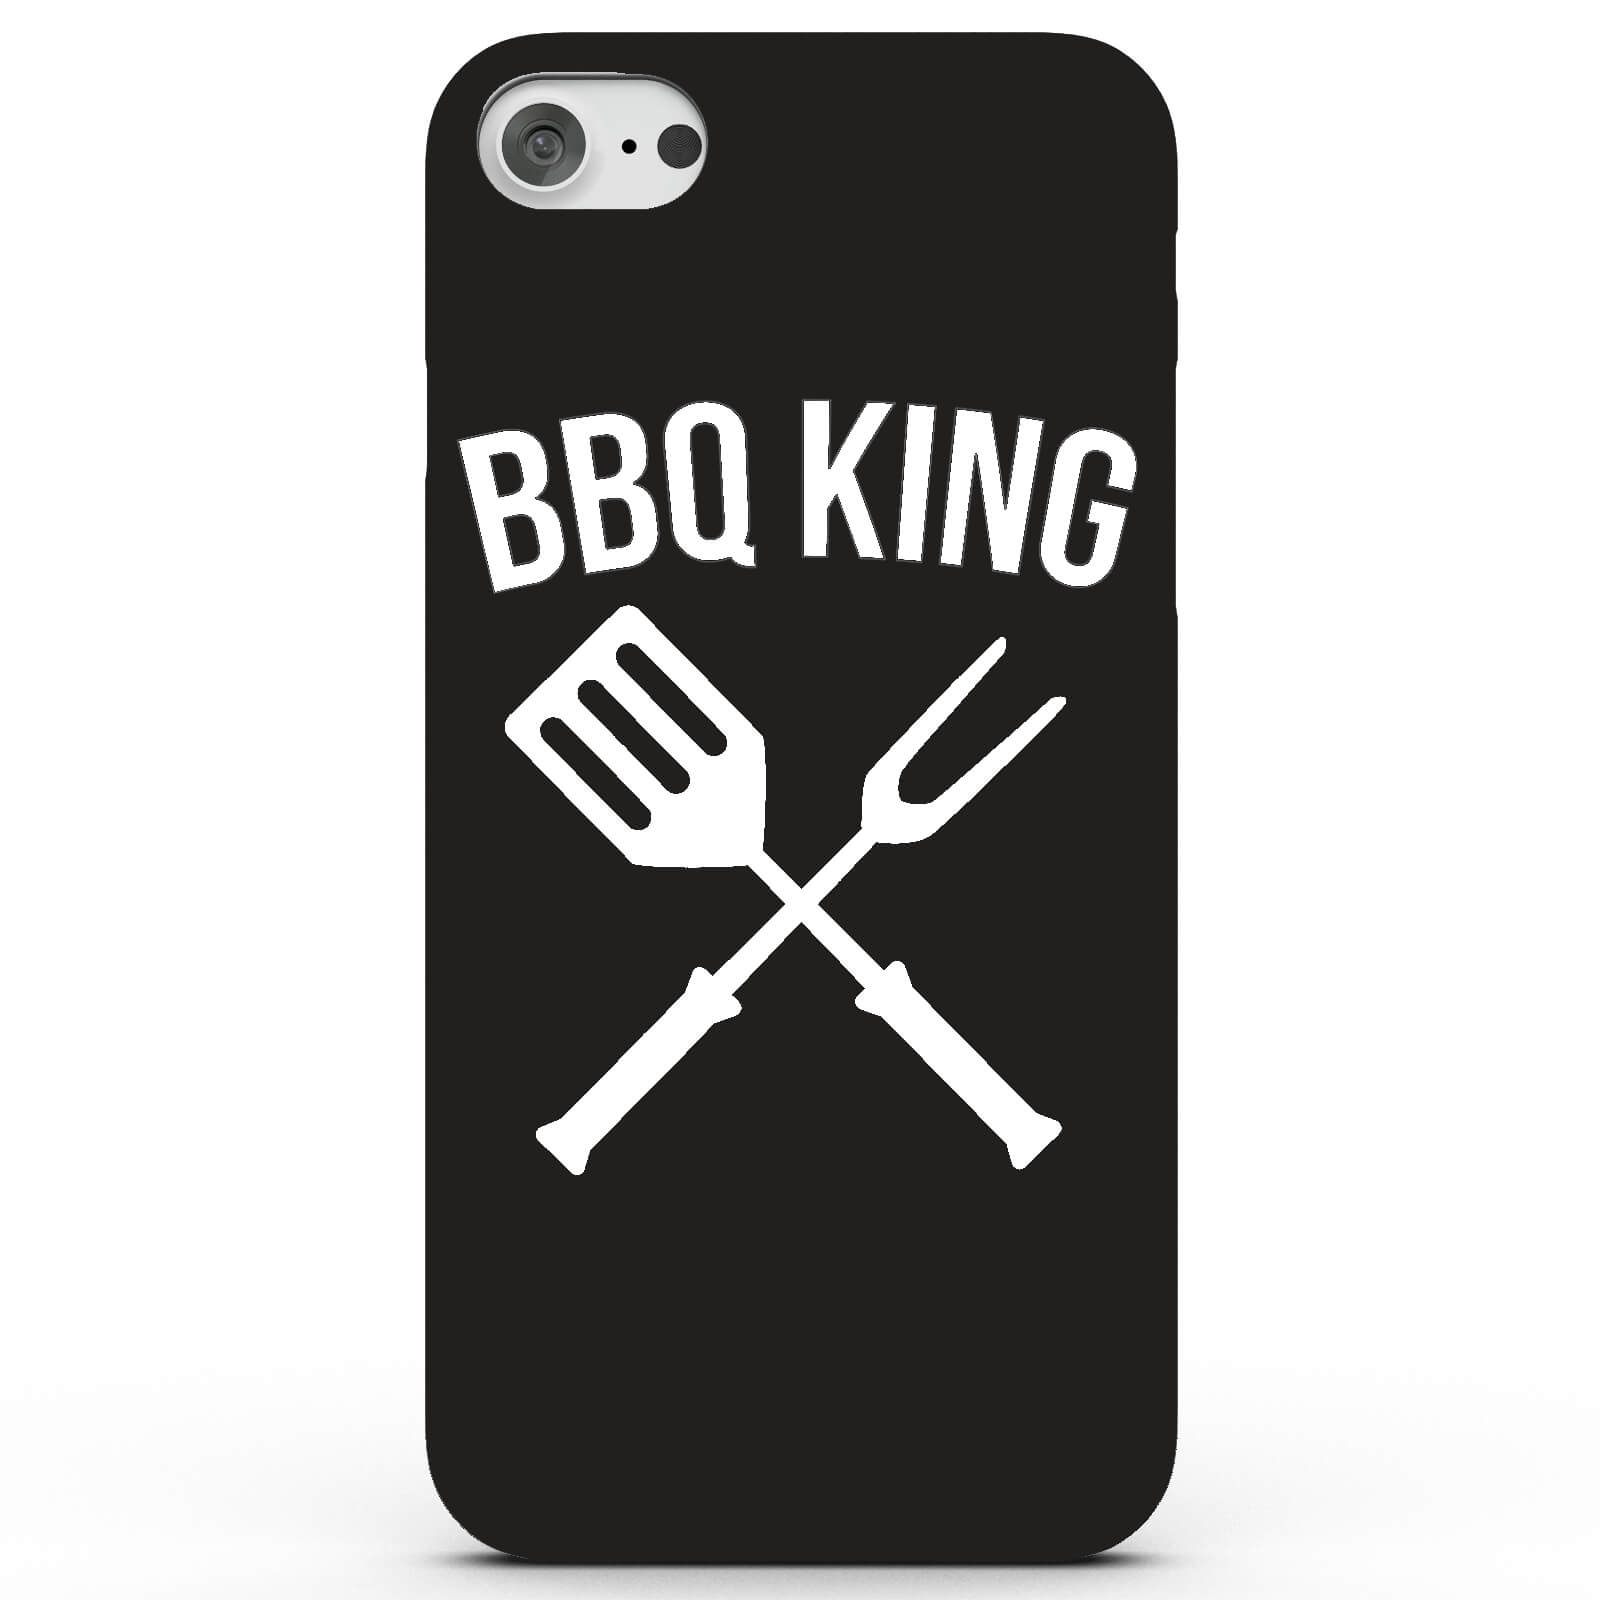 Coque iPhone & Android BBQ King - 4 Couleurs